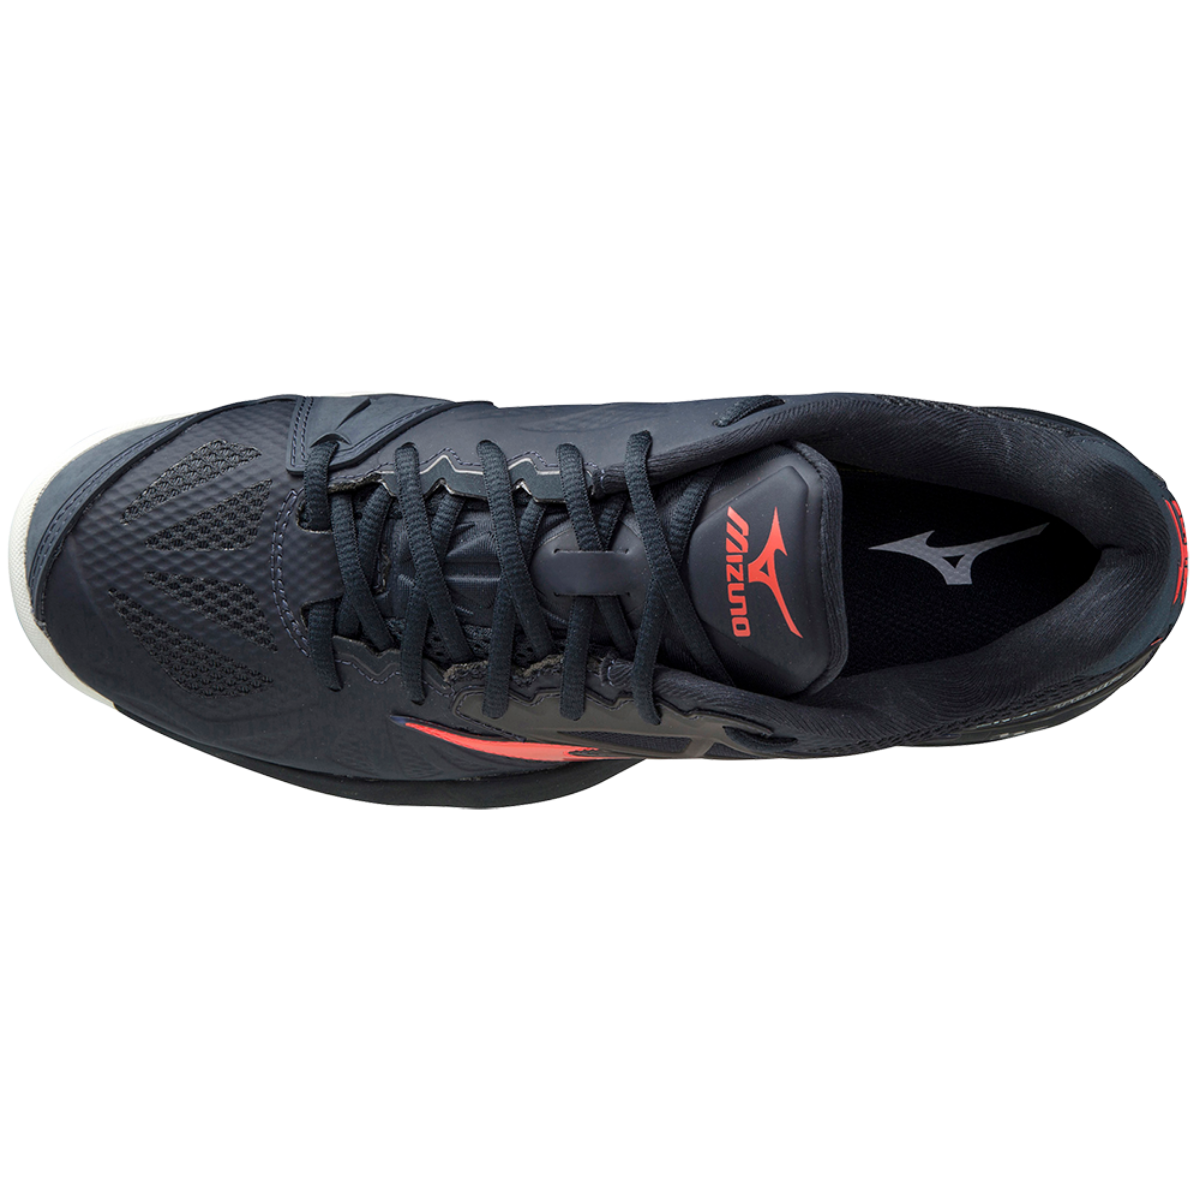 INTENSE TOUR 5 AC UNISEX (TENNIS) Black/ Red/ White